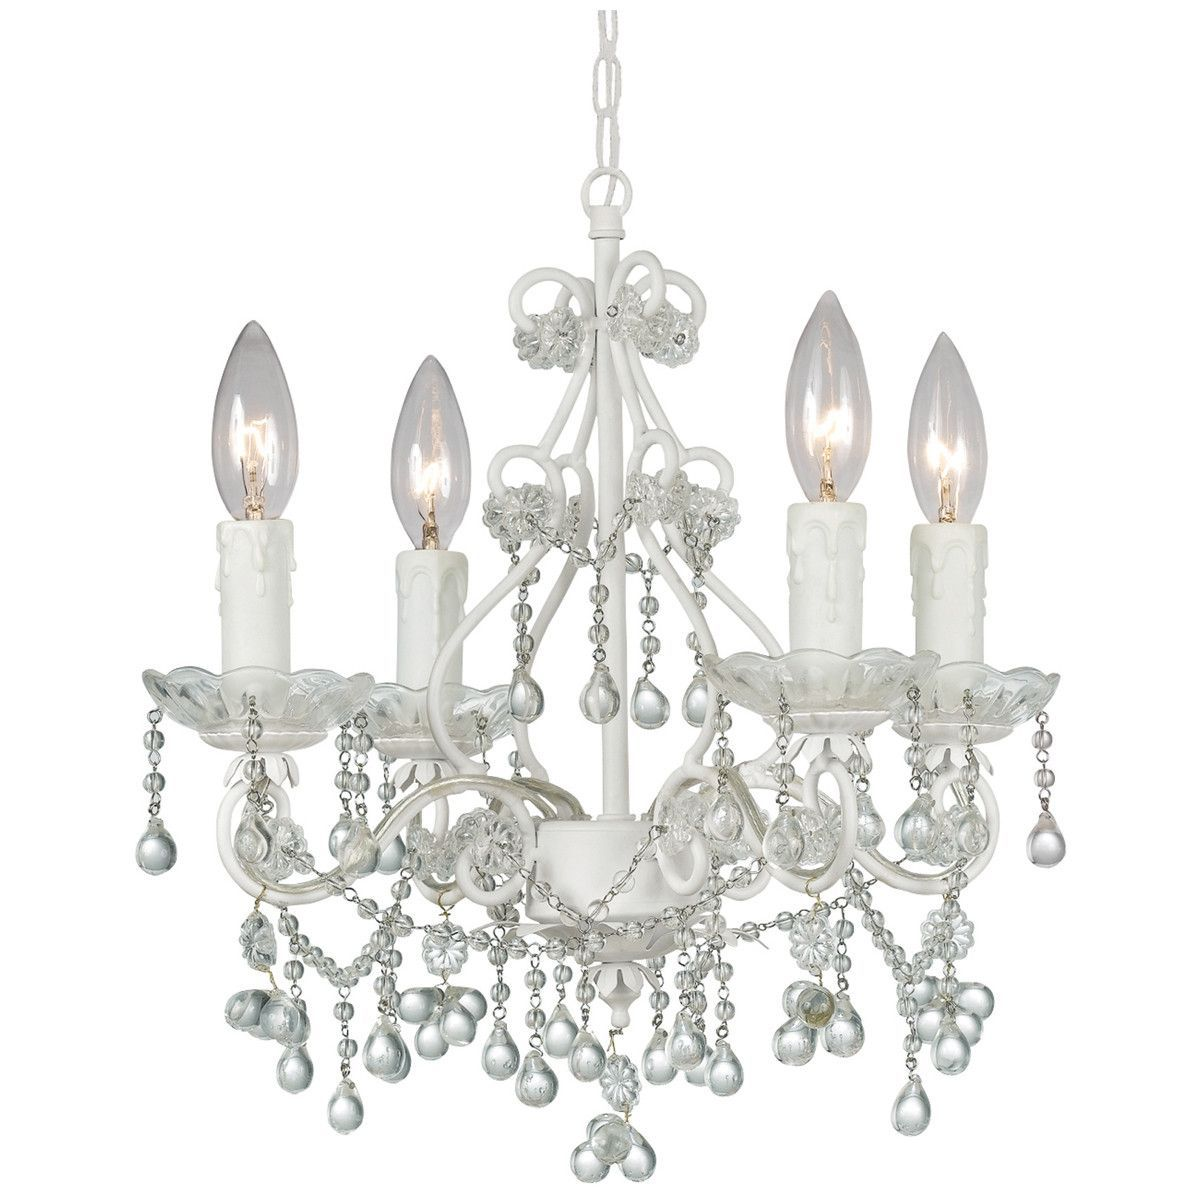 Crystorama paris market 4 lights clear crystal white mini chandelier crystorama paris market 4 lights clear crystal white mini chandelier arubaitofo Images